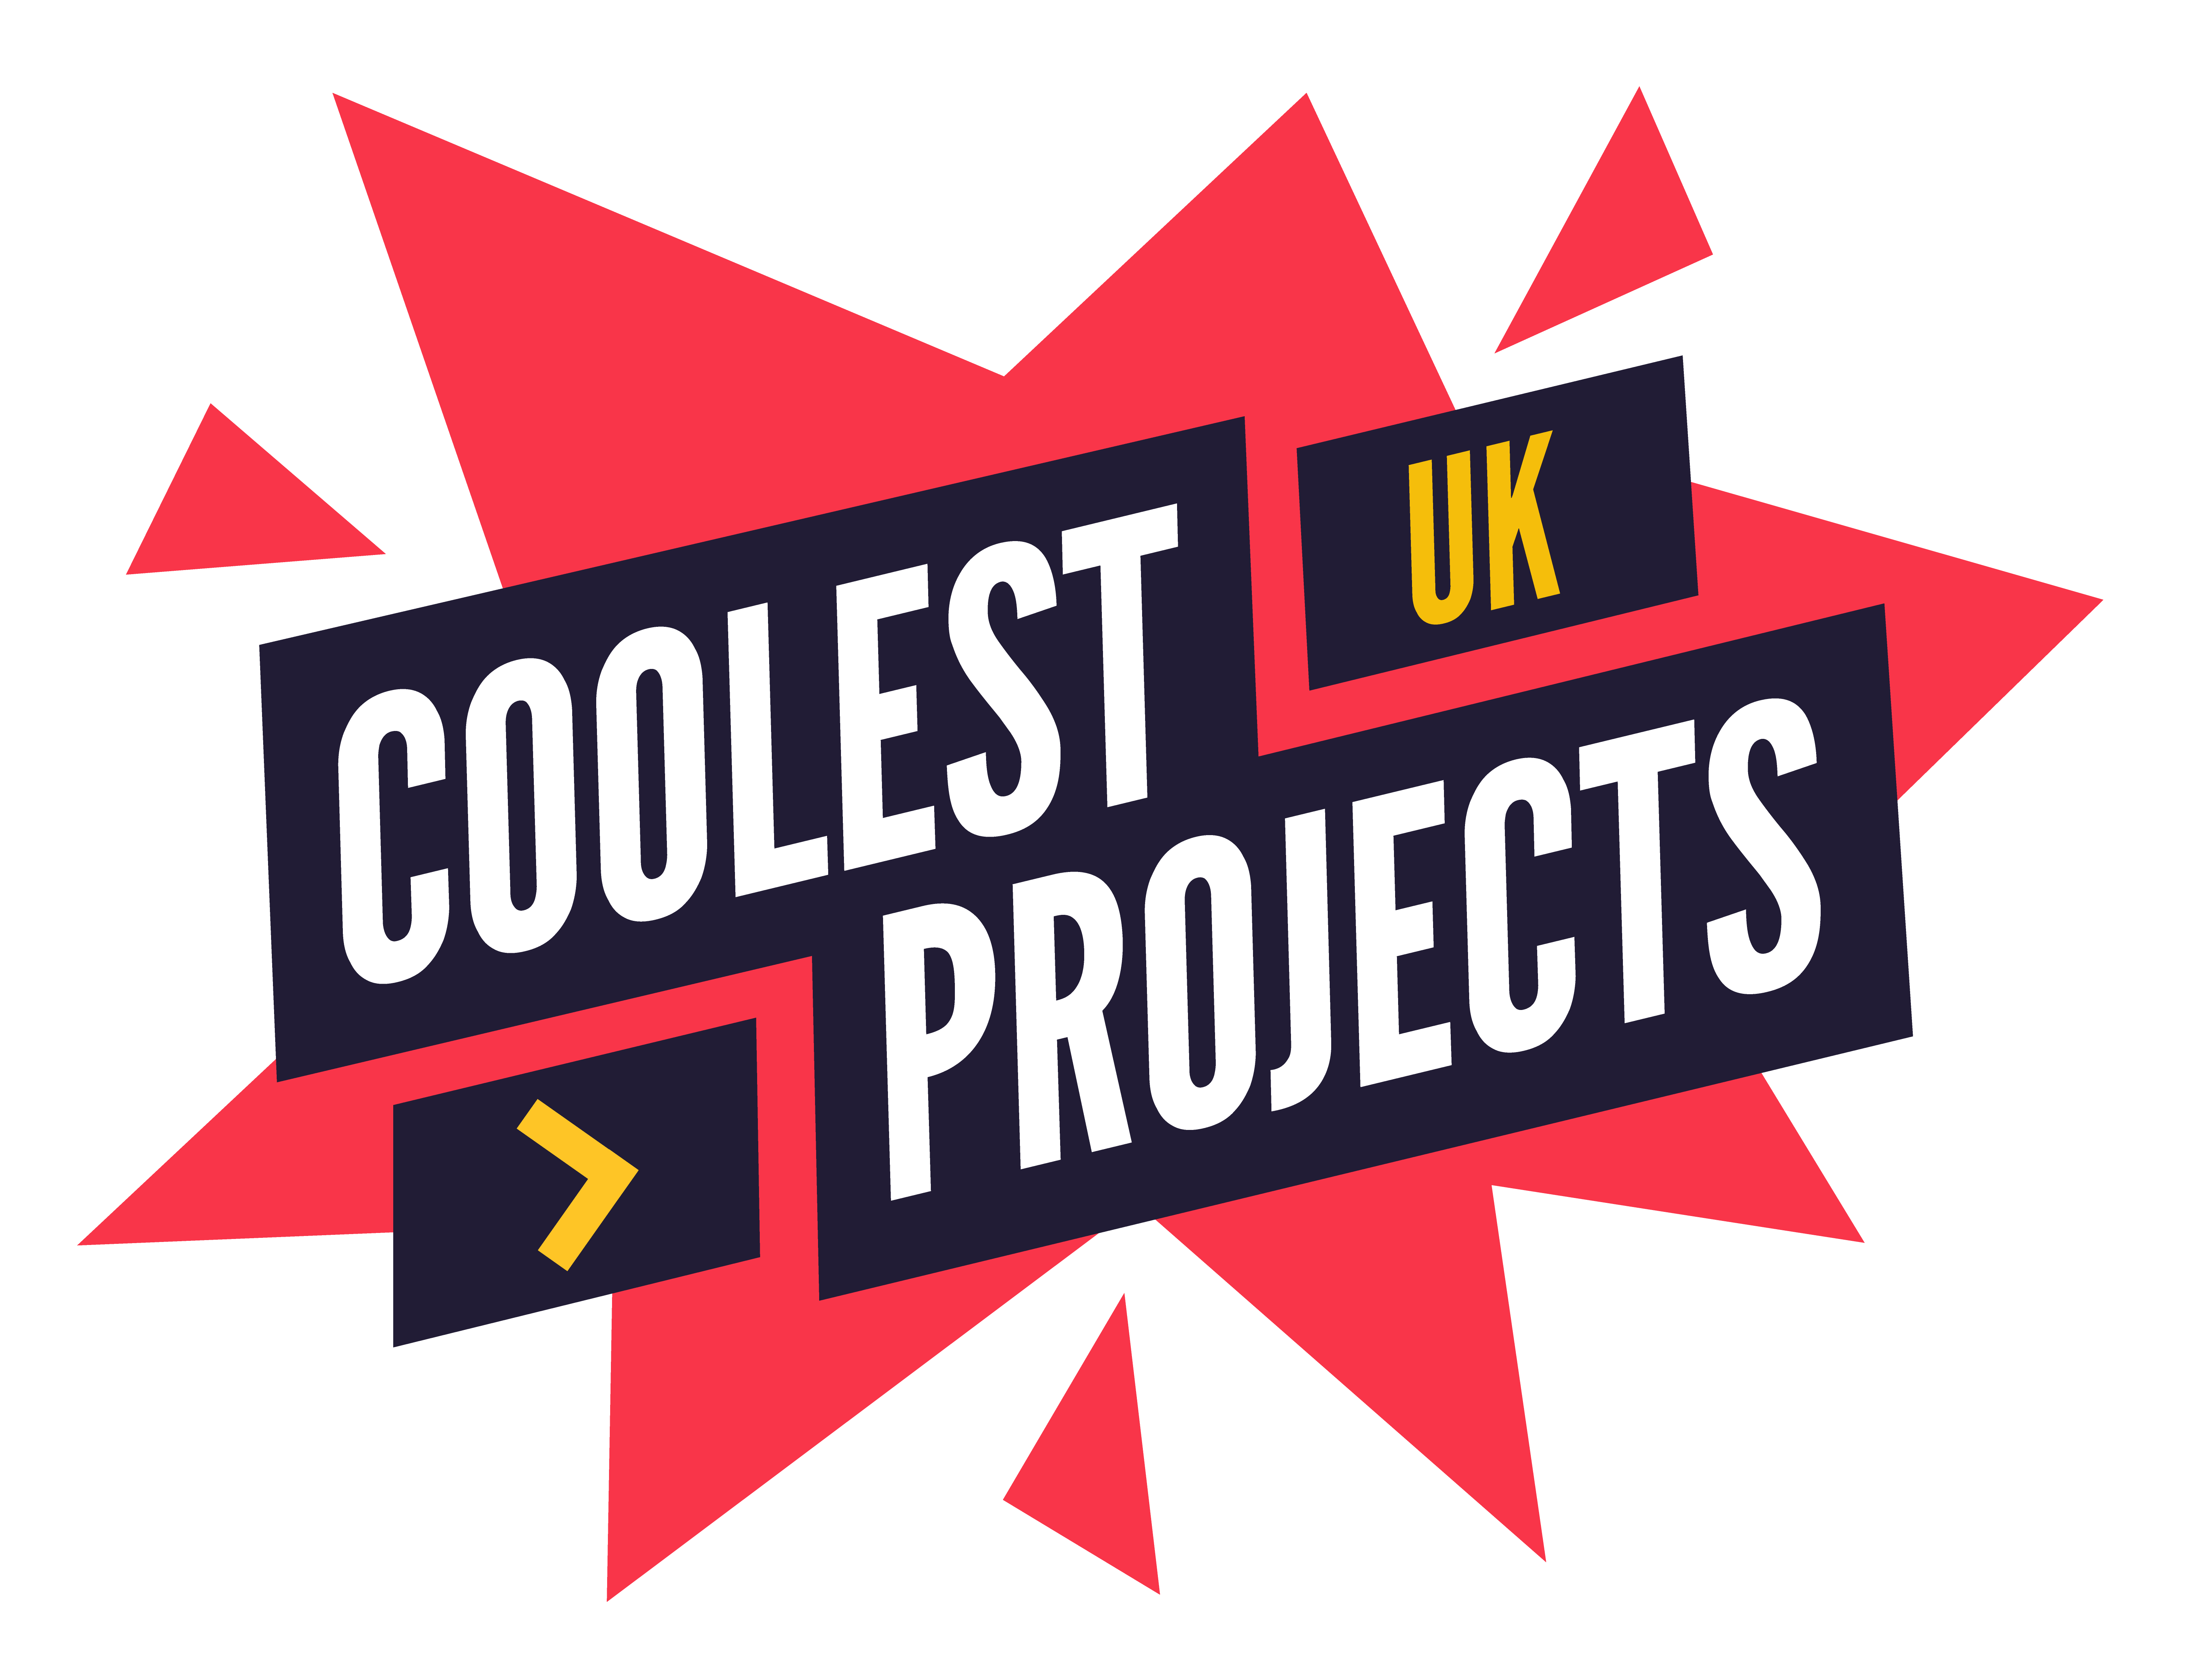 Coolest Projects UK 2019 - Raspberry Pi